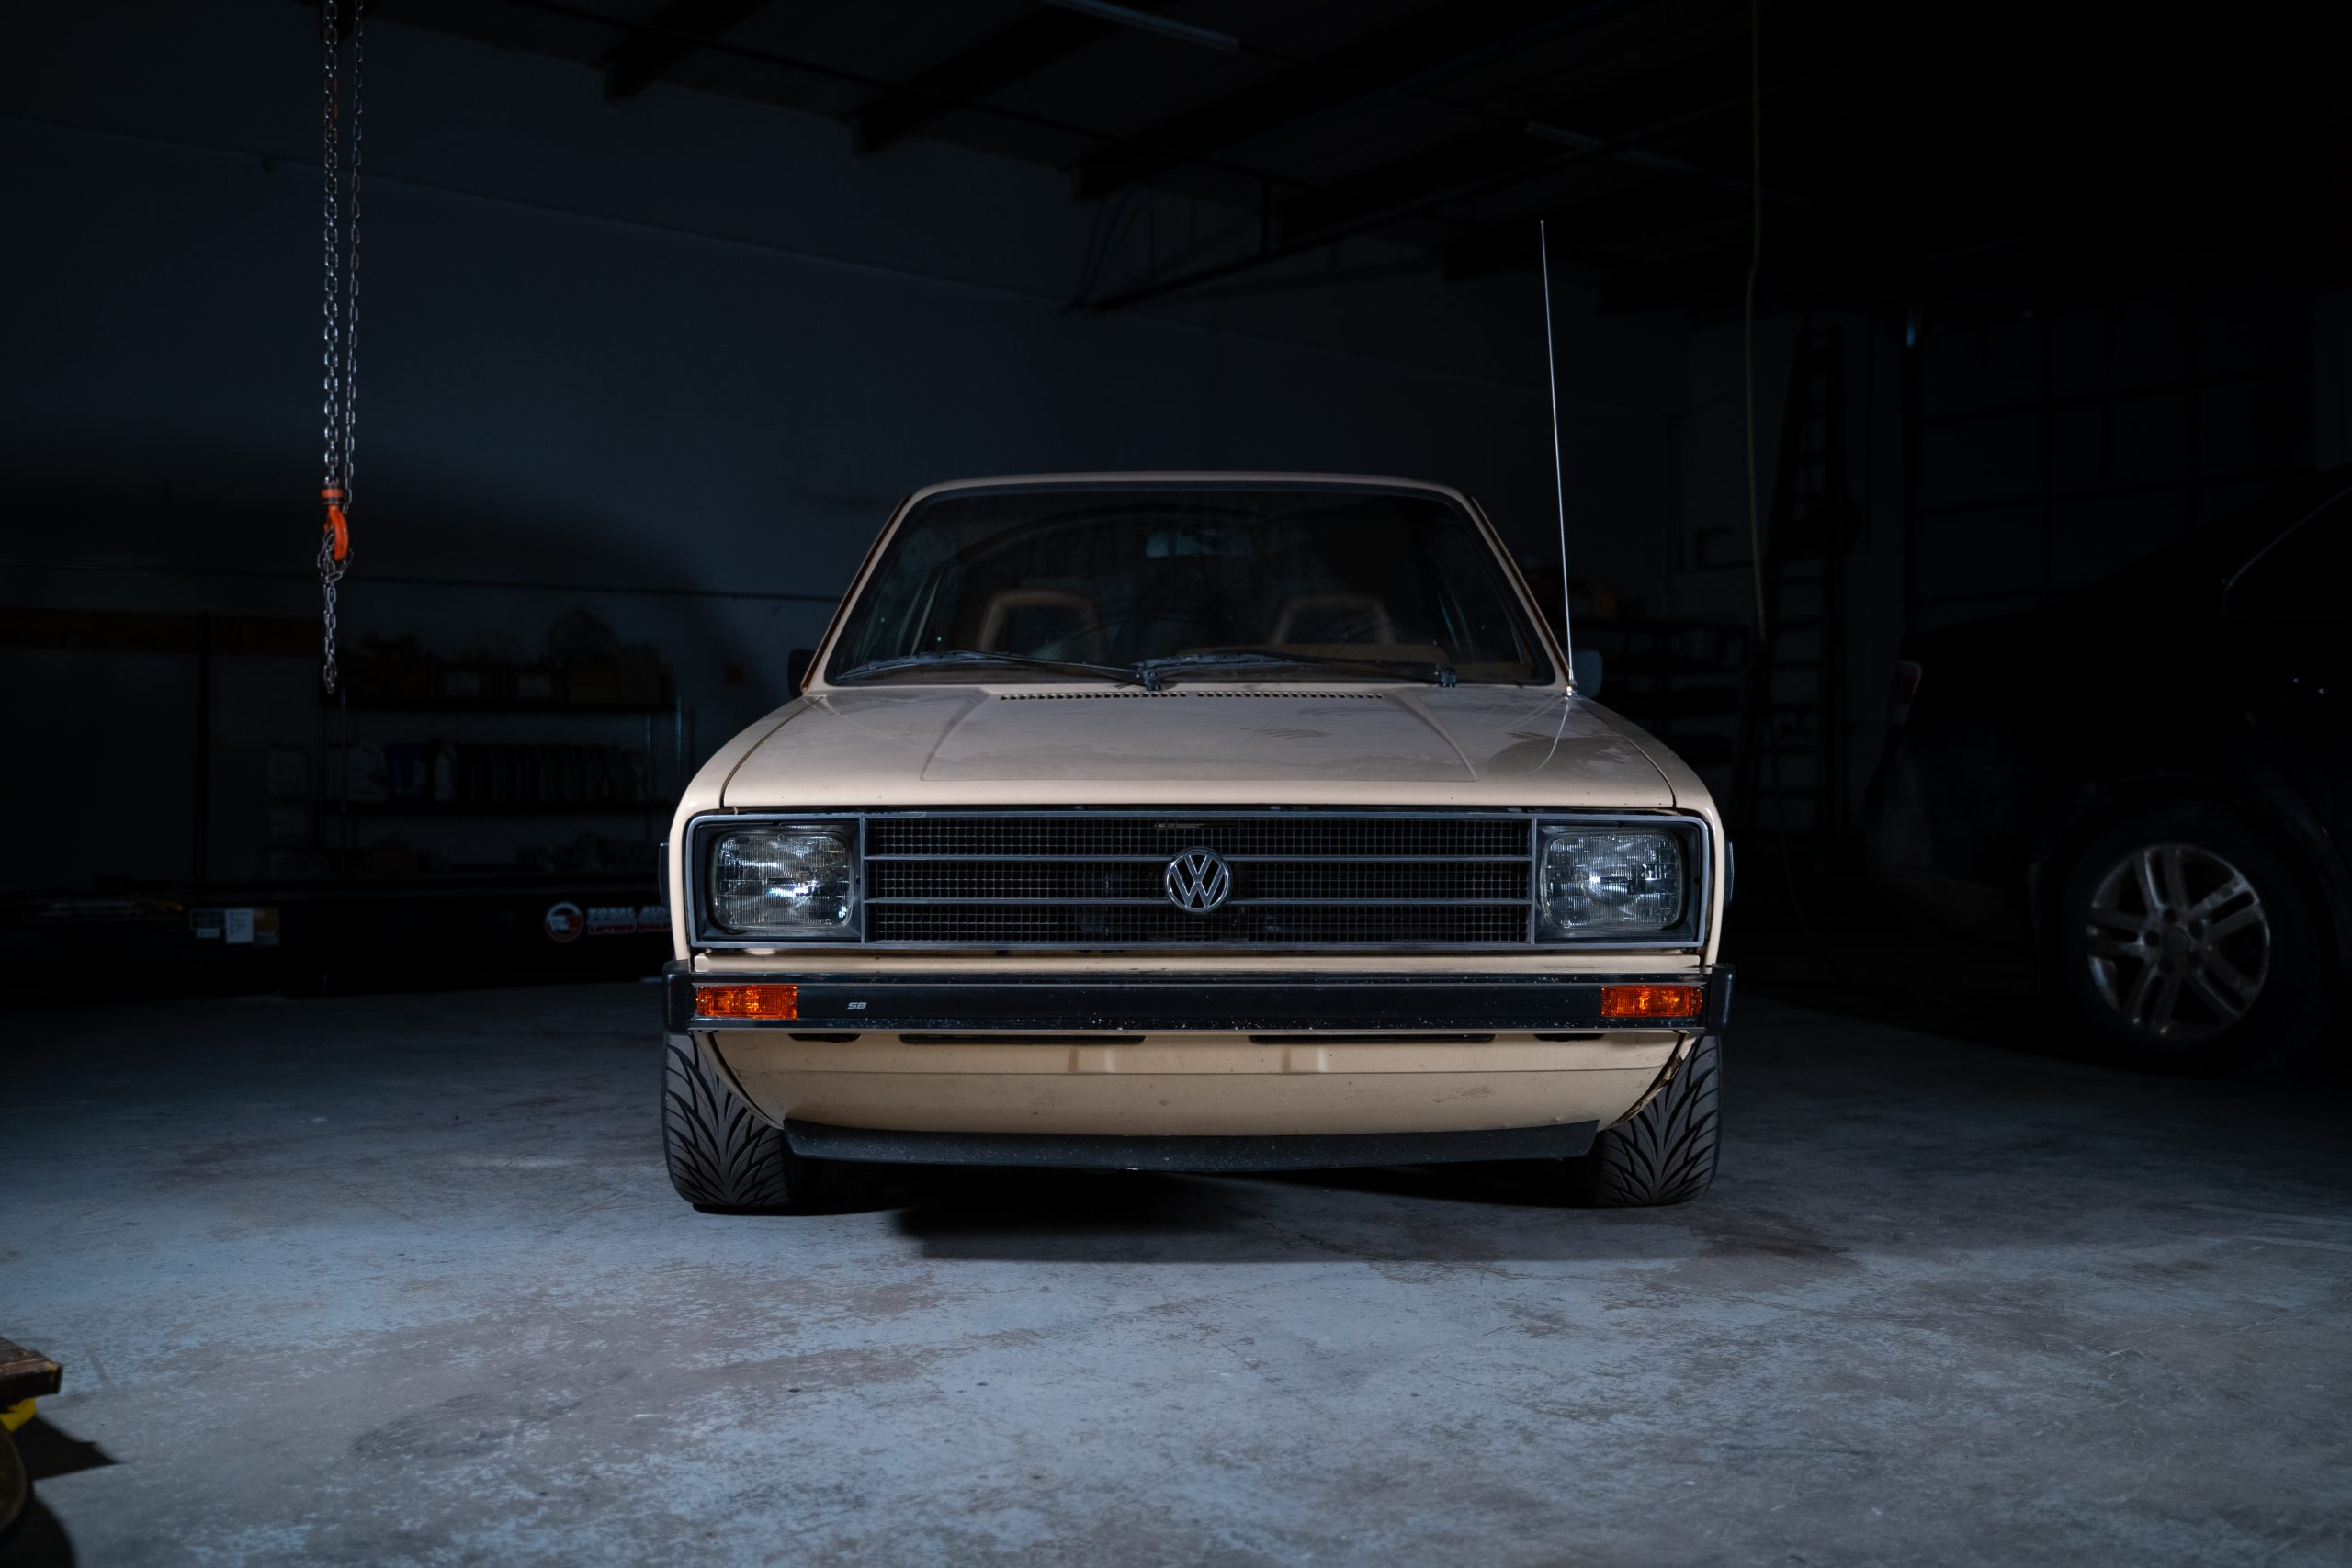 1980 VW Rabbit TDI swap garage beauty shot